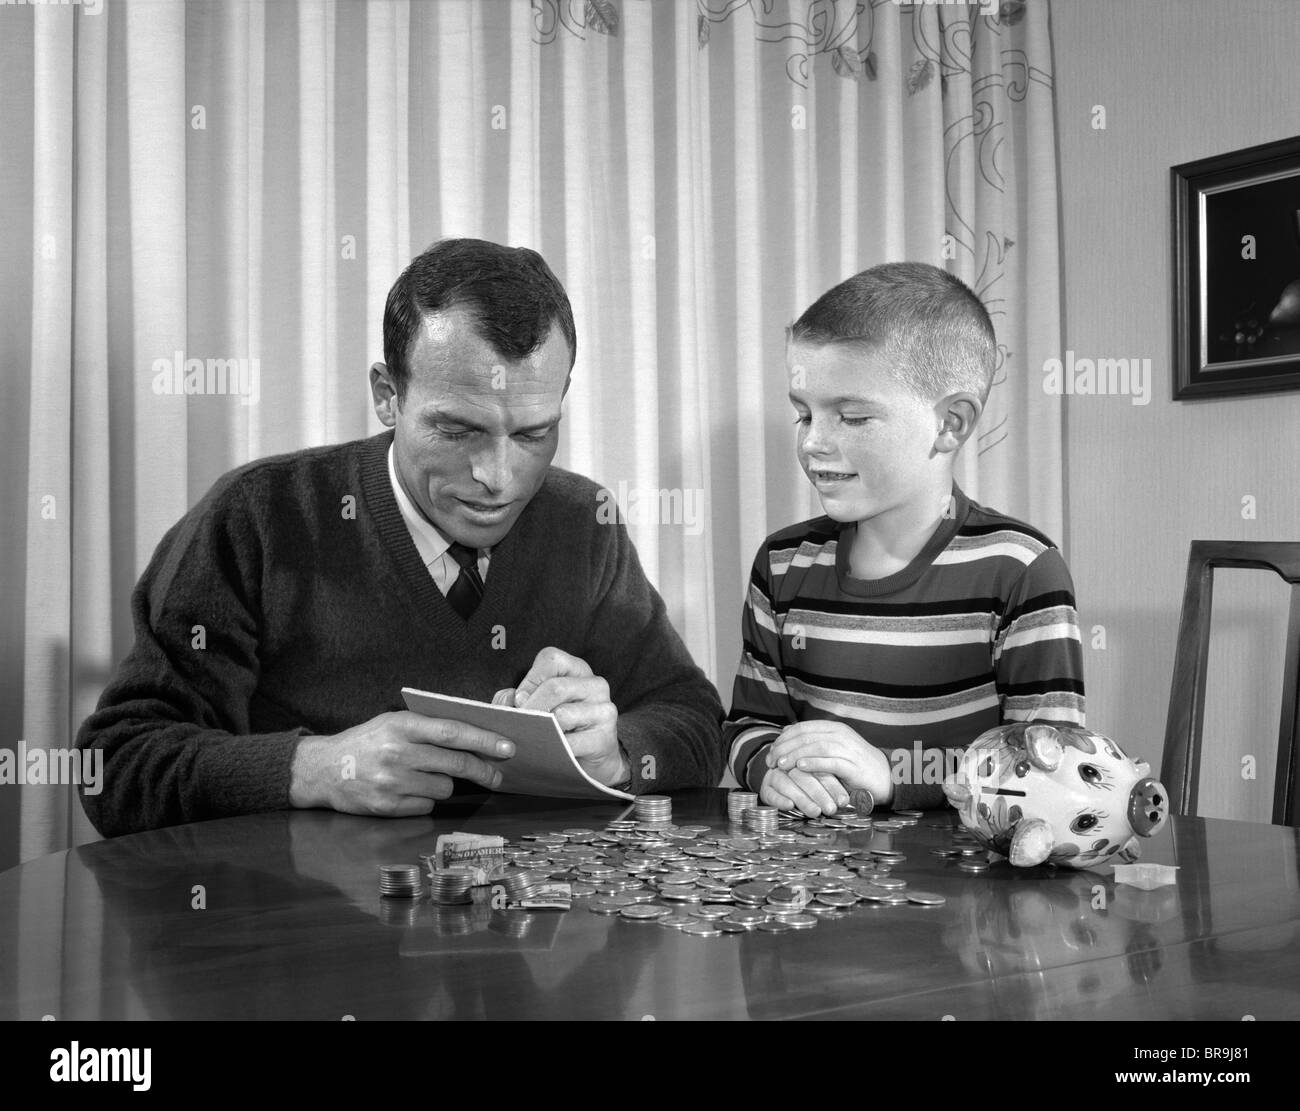 S Father Son With Piggy Bank Counting Money Coins